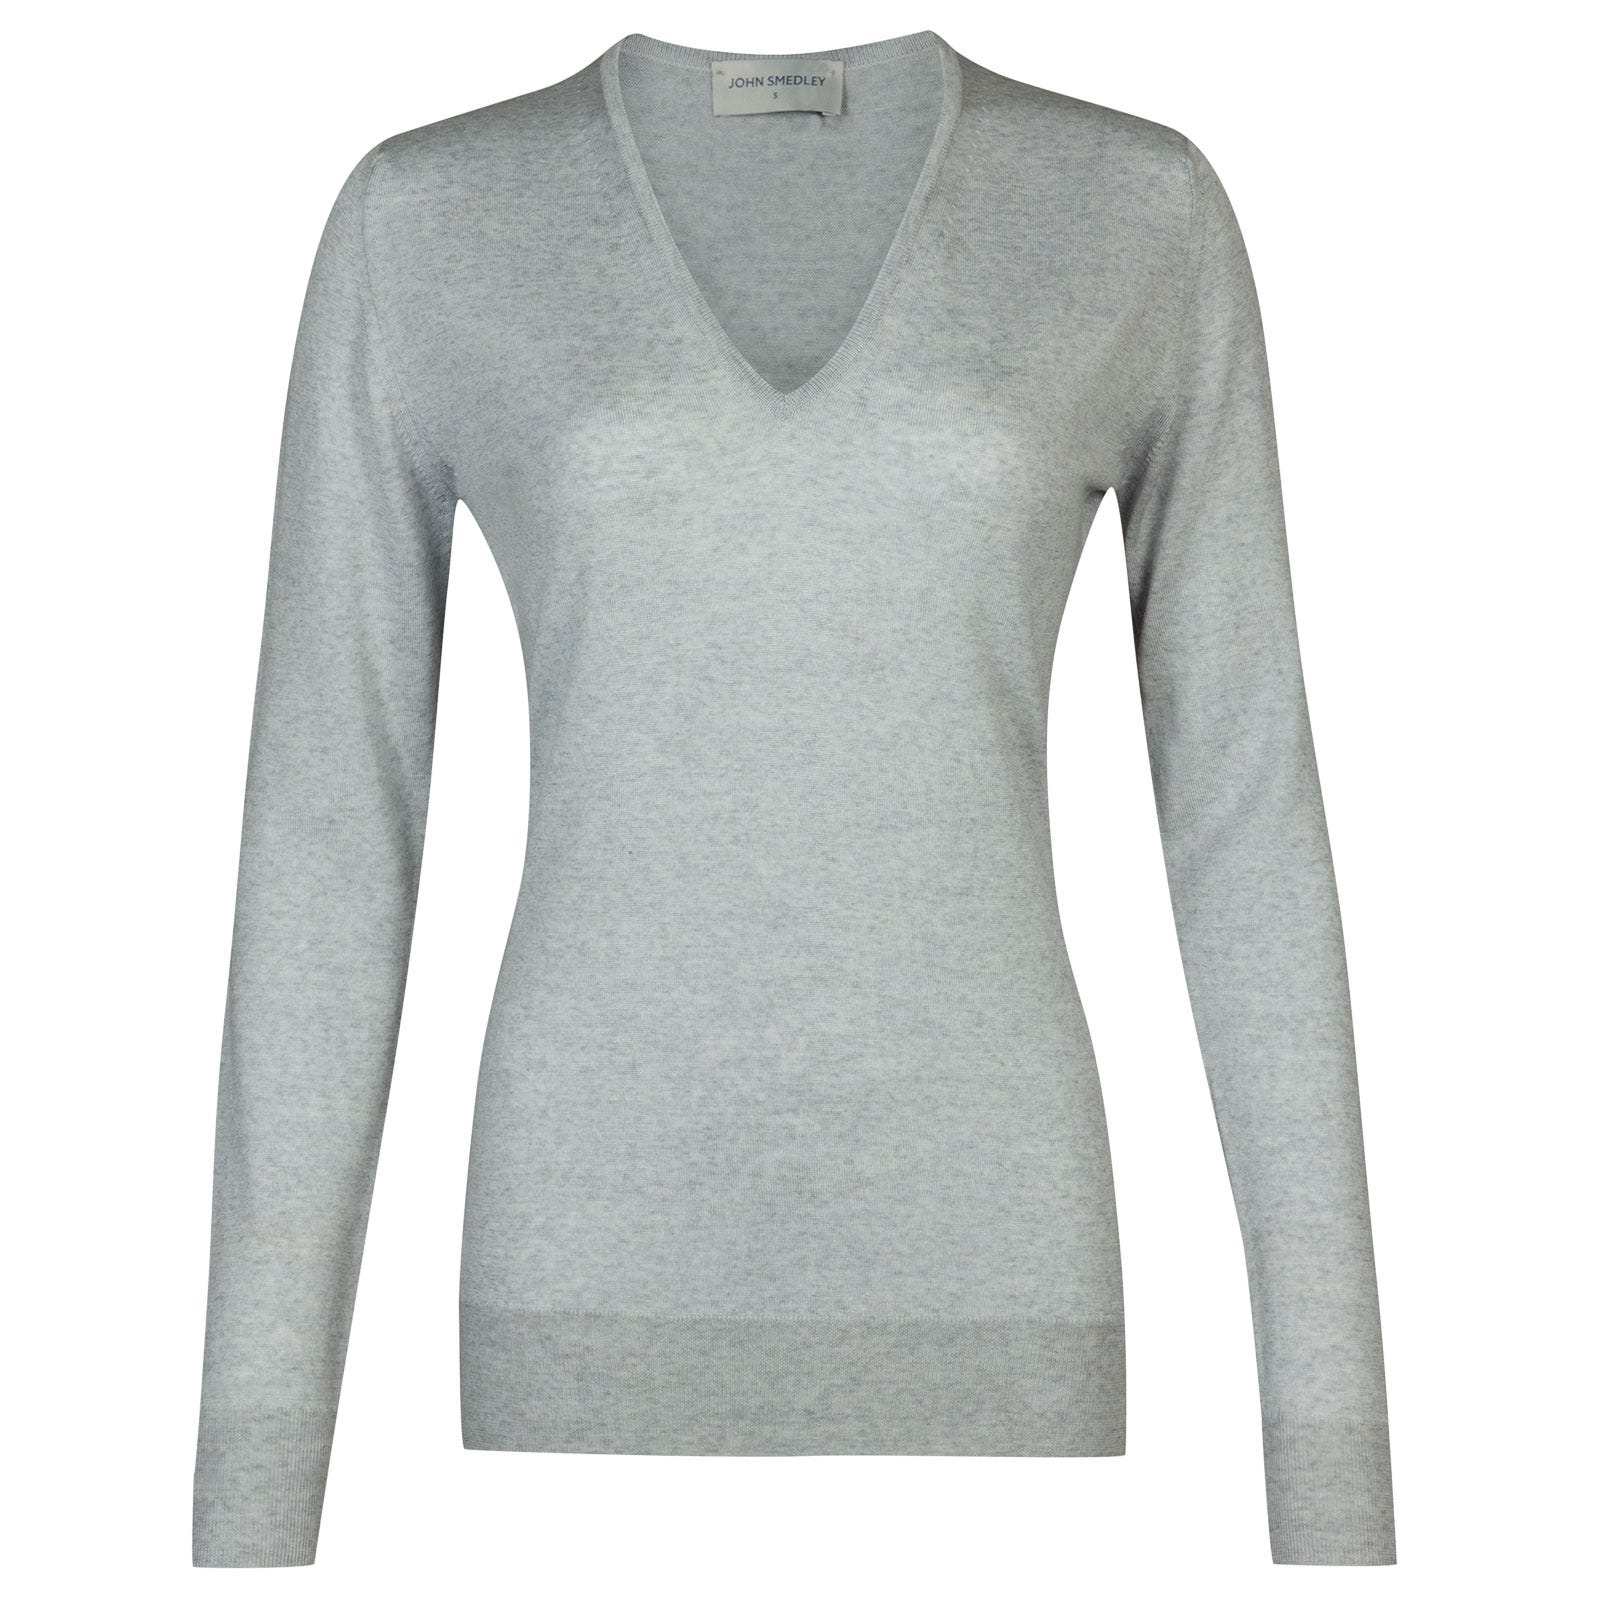 John Smedley orchid Merino Wool Sweater in Bardot Grey-S